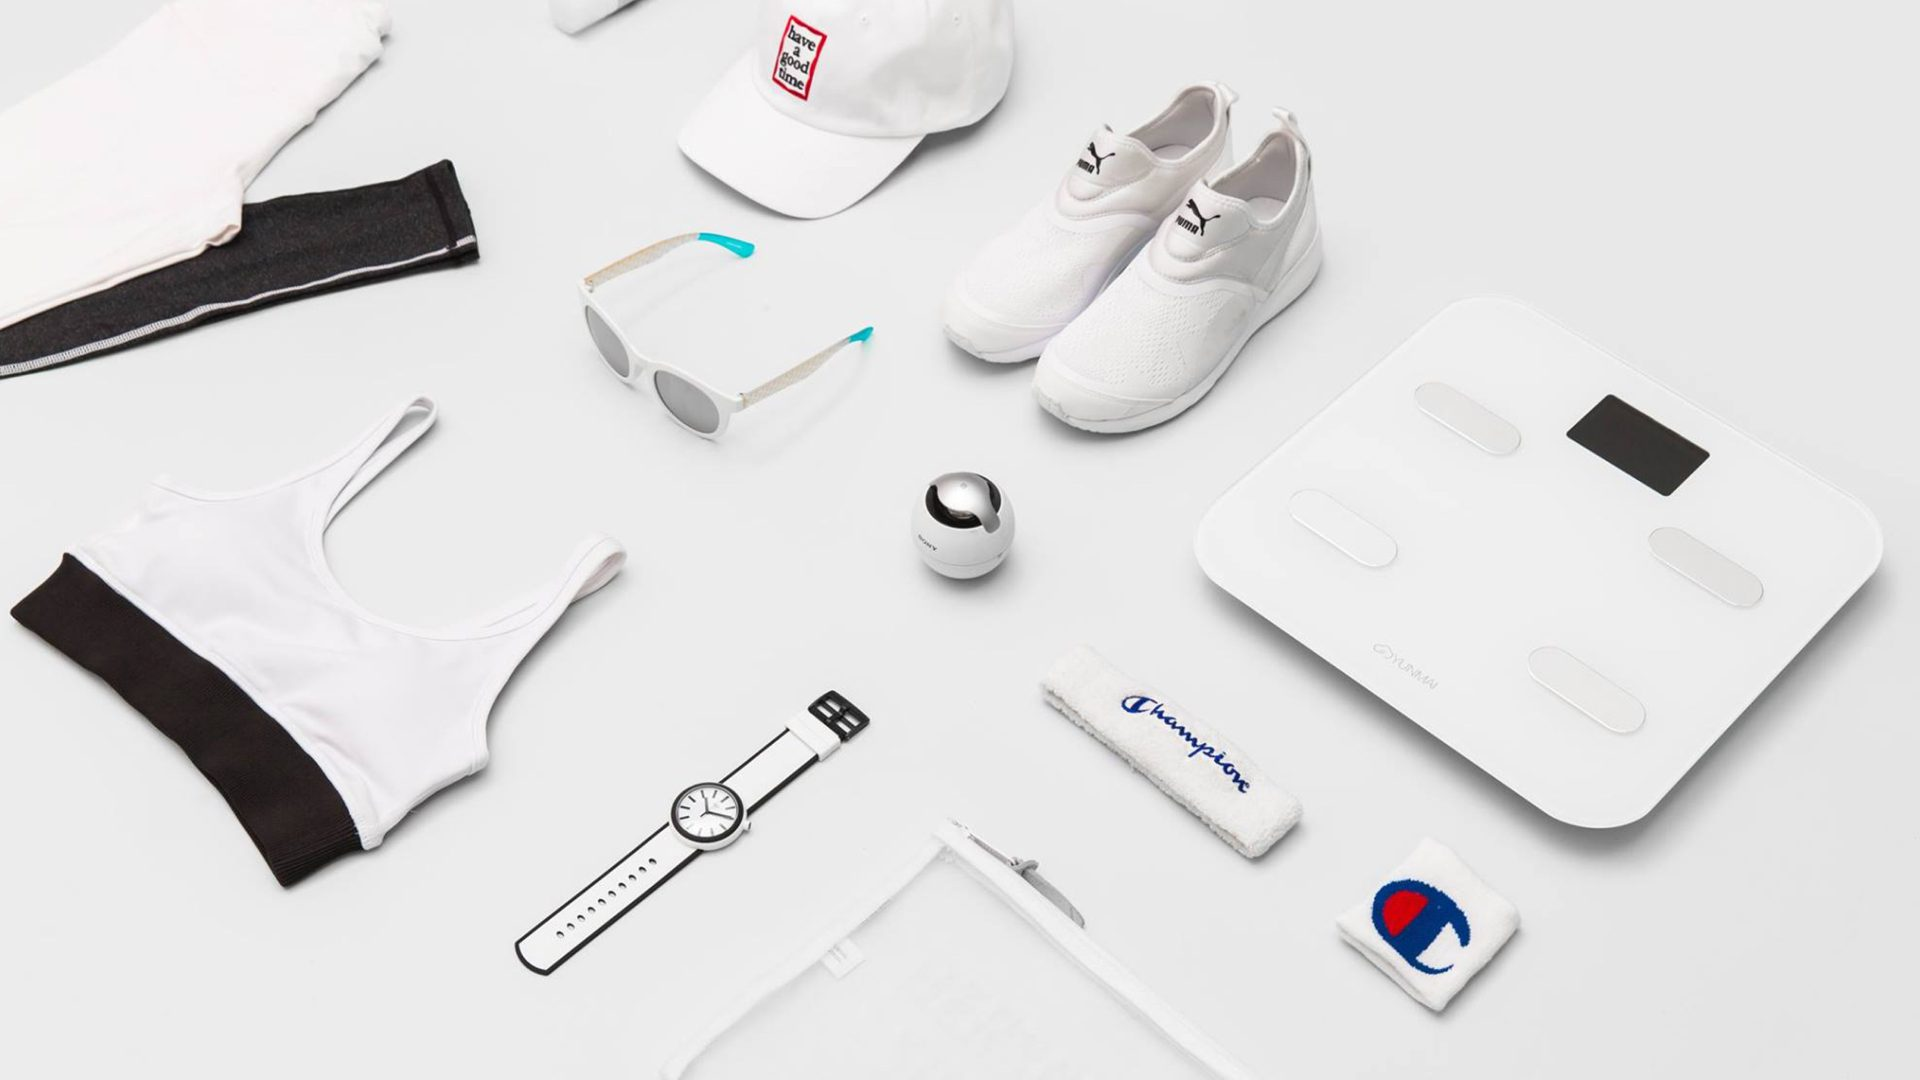 assortment of promotional products on a white table